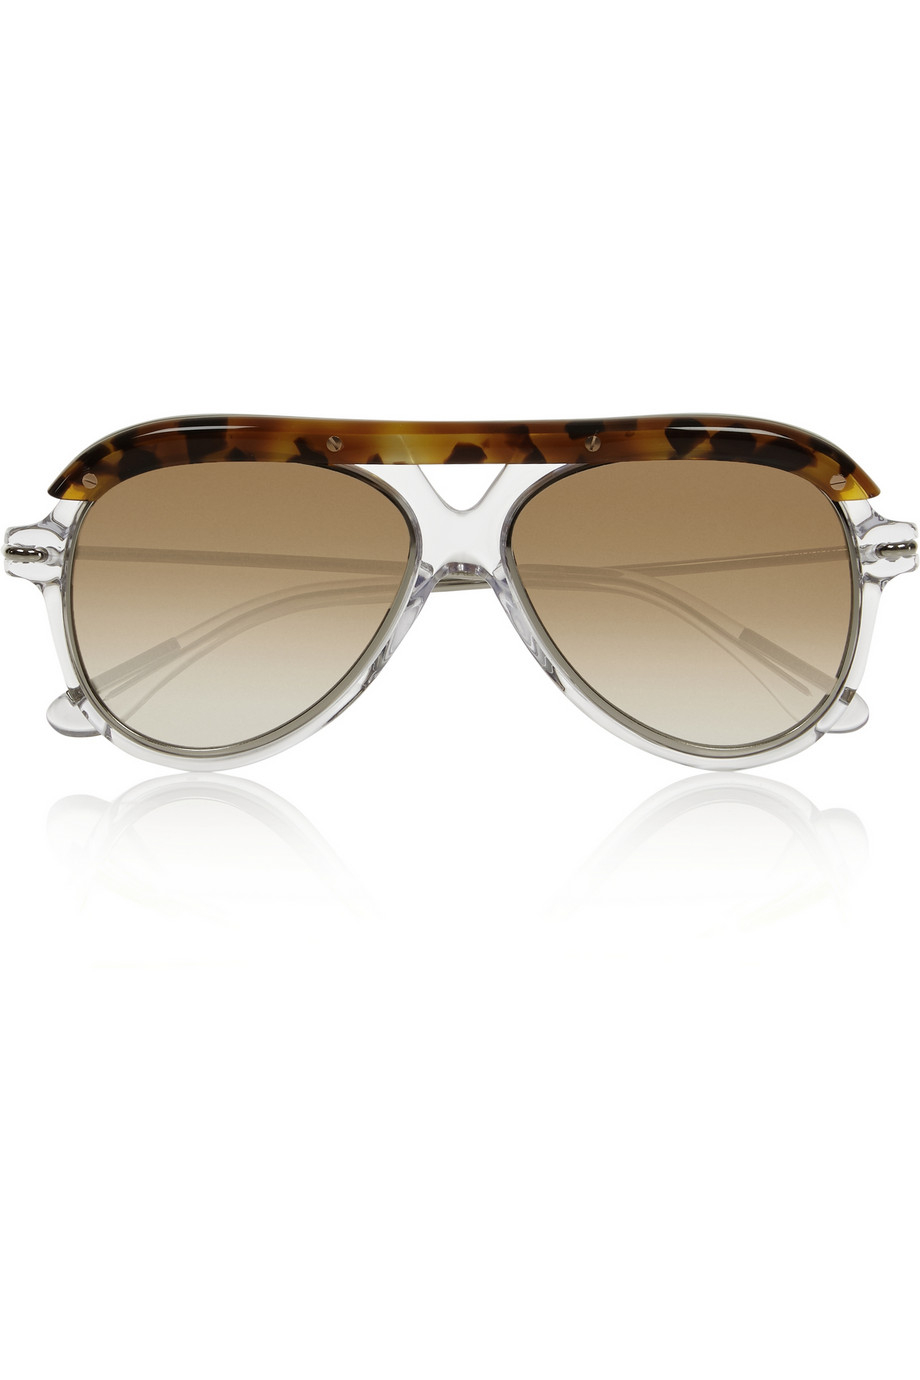 Are Aviator Eyeglasses In Style